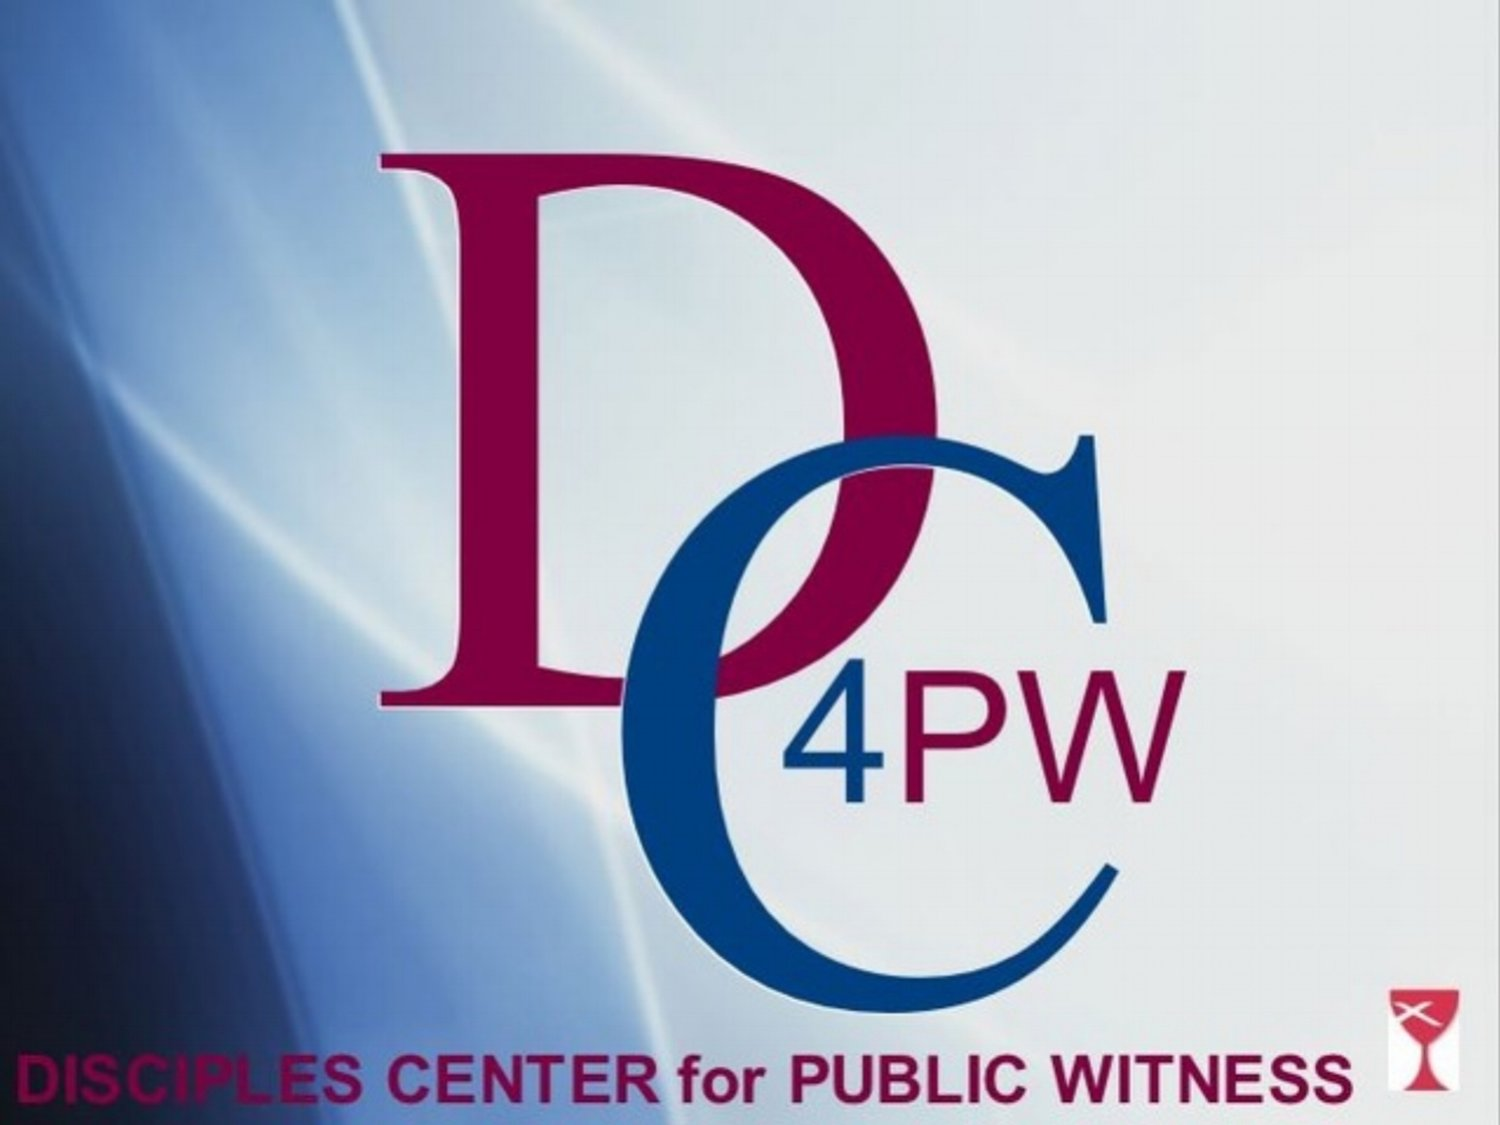 Christian Church (Disciples of Christ) Disciples Center for Public Witness.jpeg